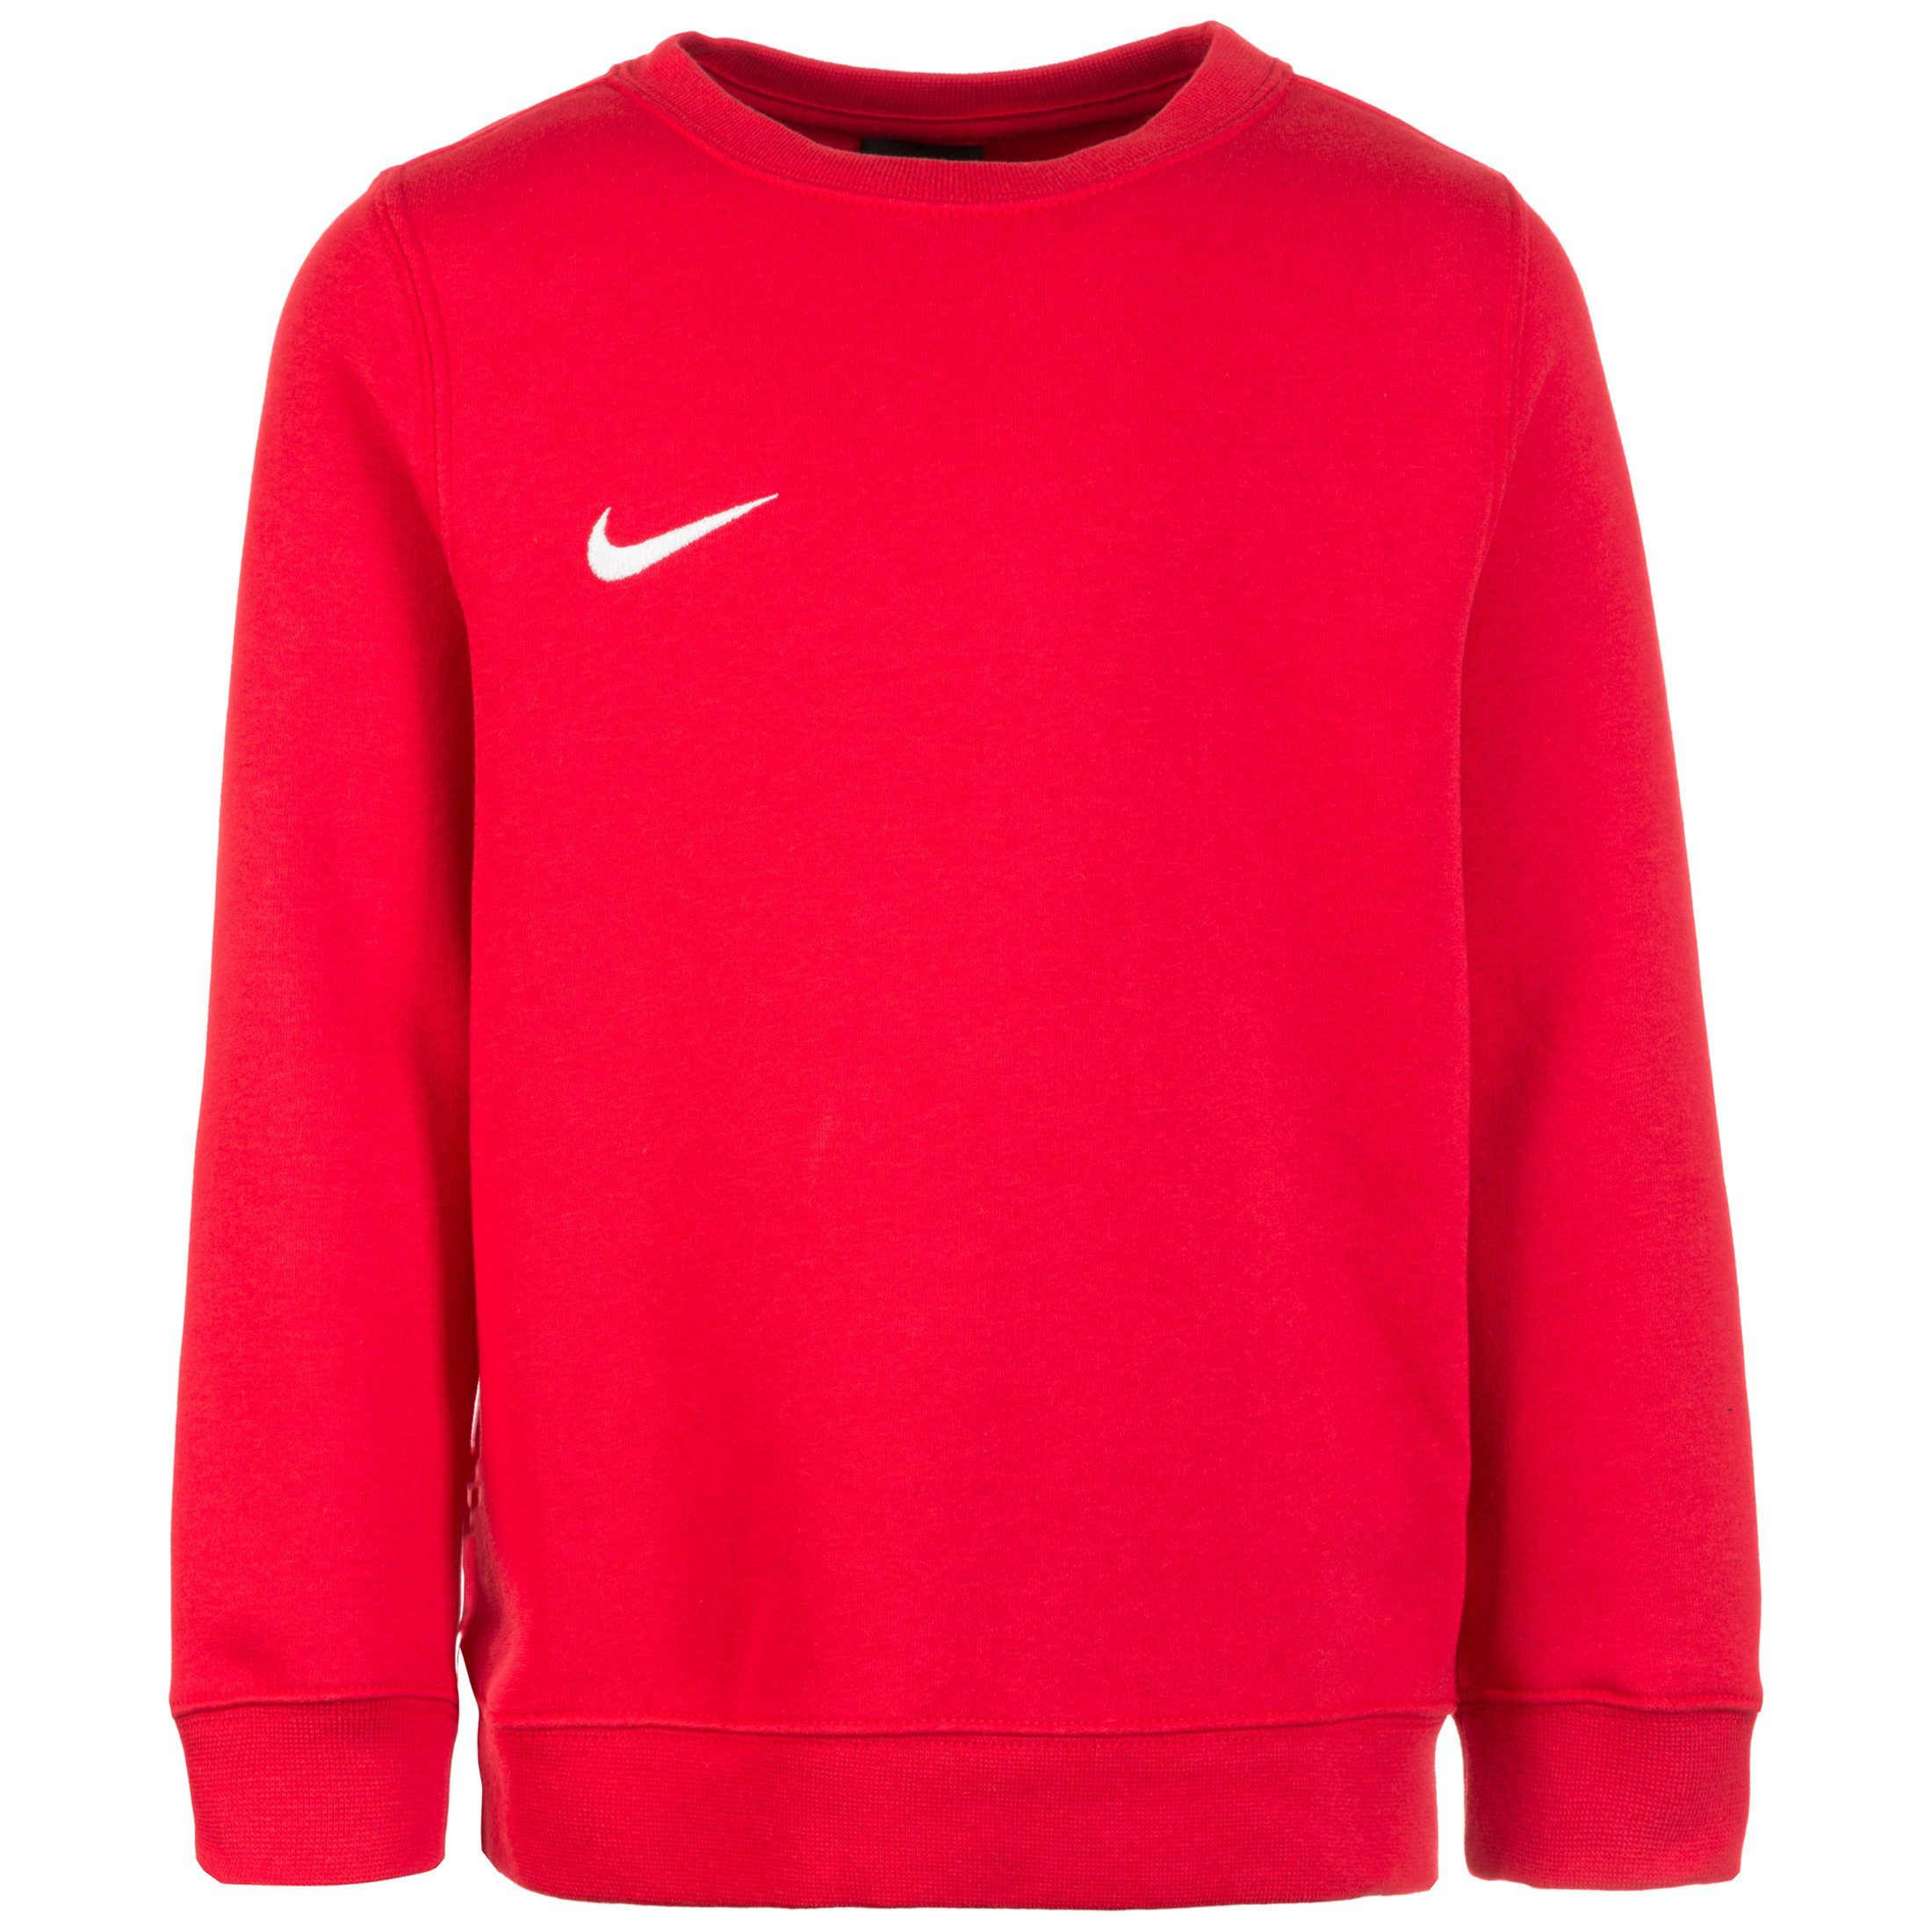 Nike Sweatshirt Club19 Crew Fleece Tm, rot, Kinder